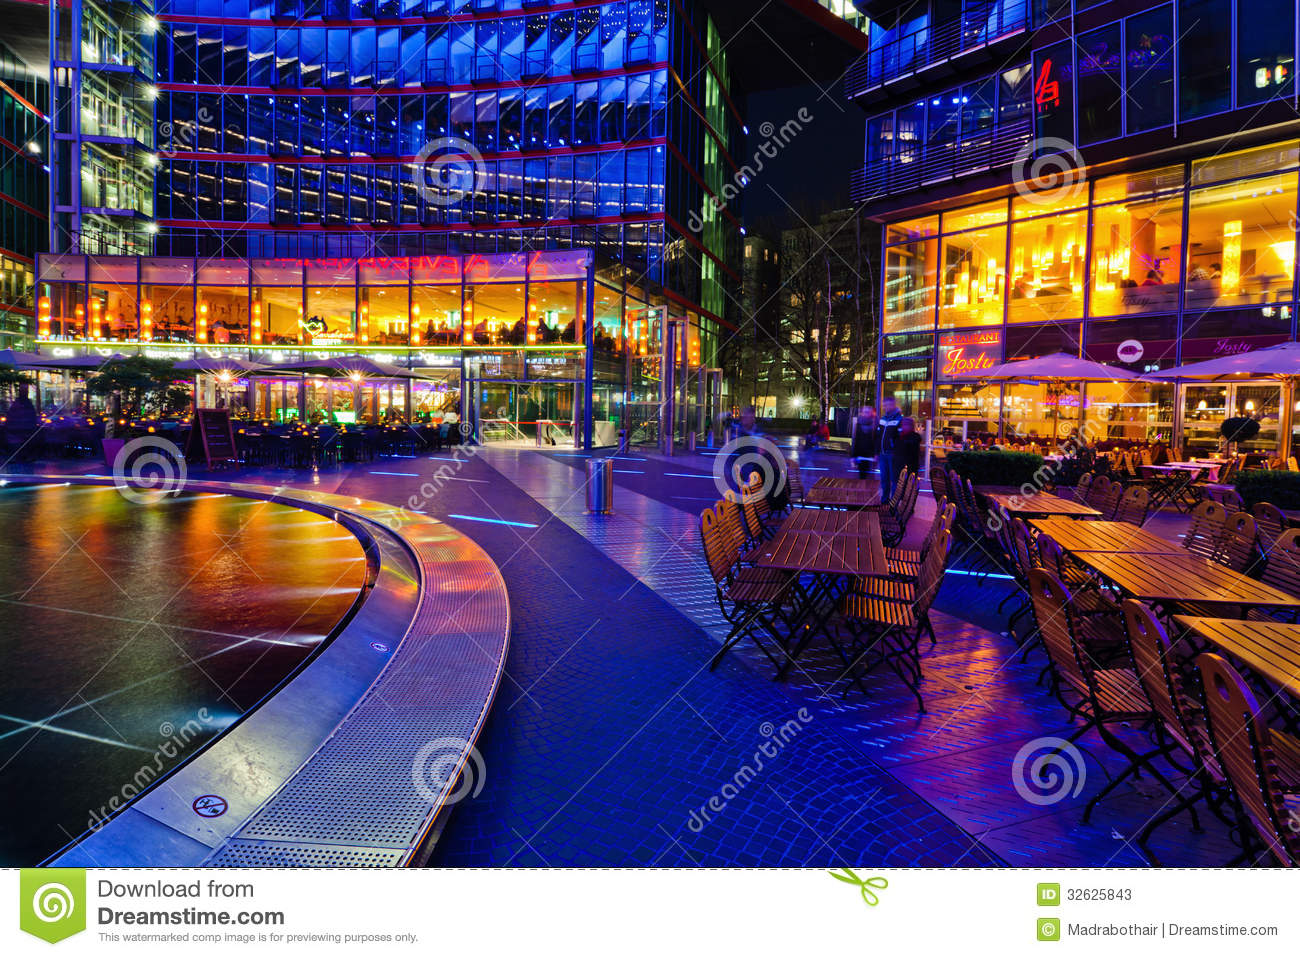 restaurants under the dome of the sony center in berlin editorial stock photo image 32625843. Black Bedroom Furniture Sets. Home Design Ideas